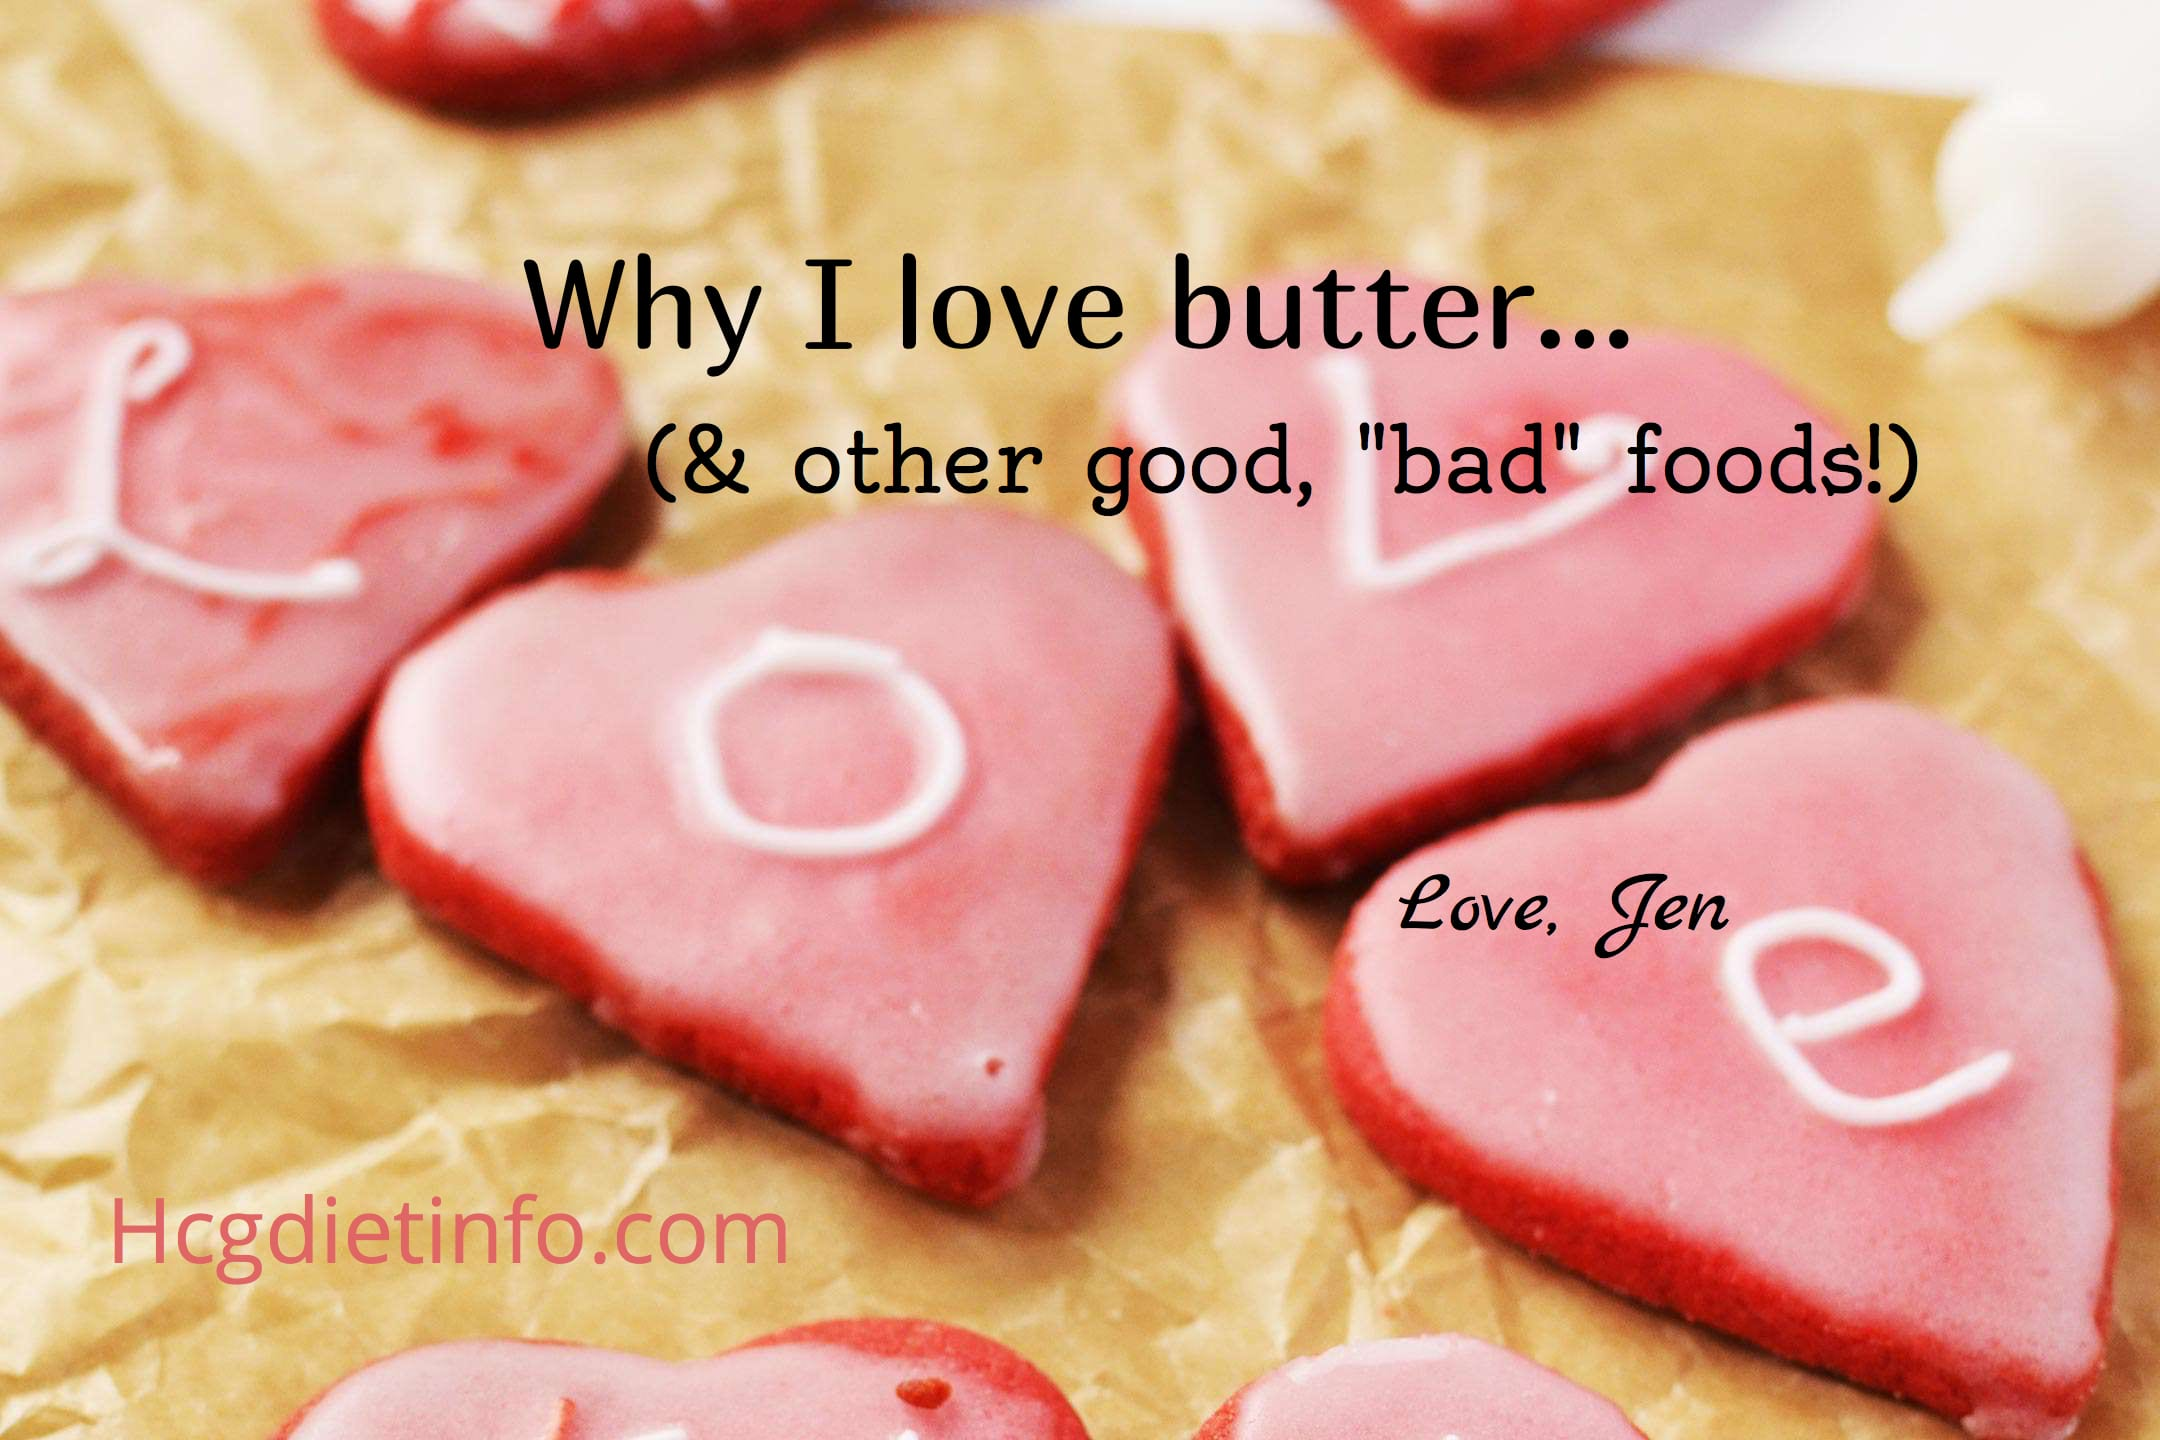 Why I'm Not Afraid of Butter